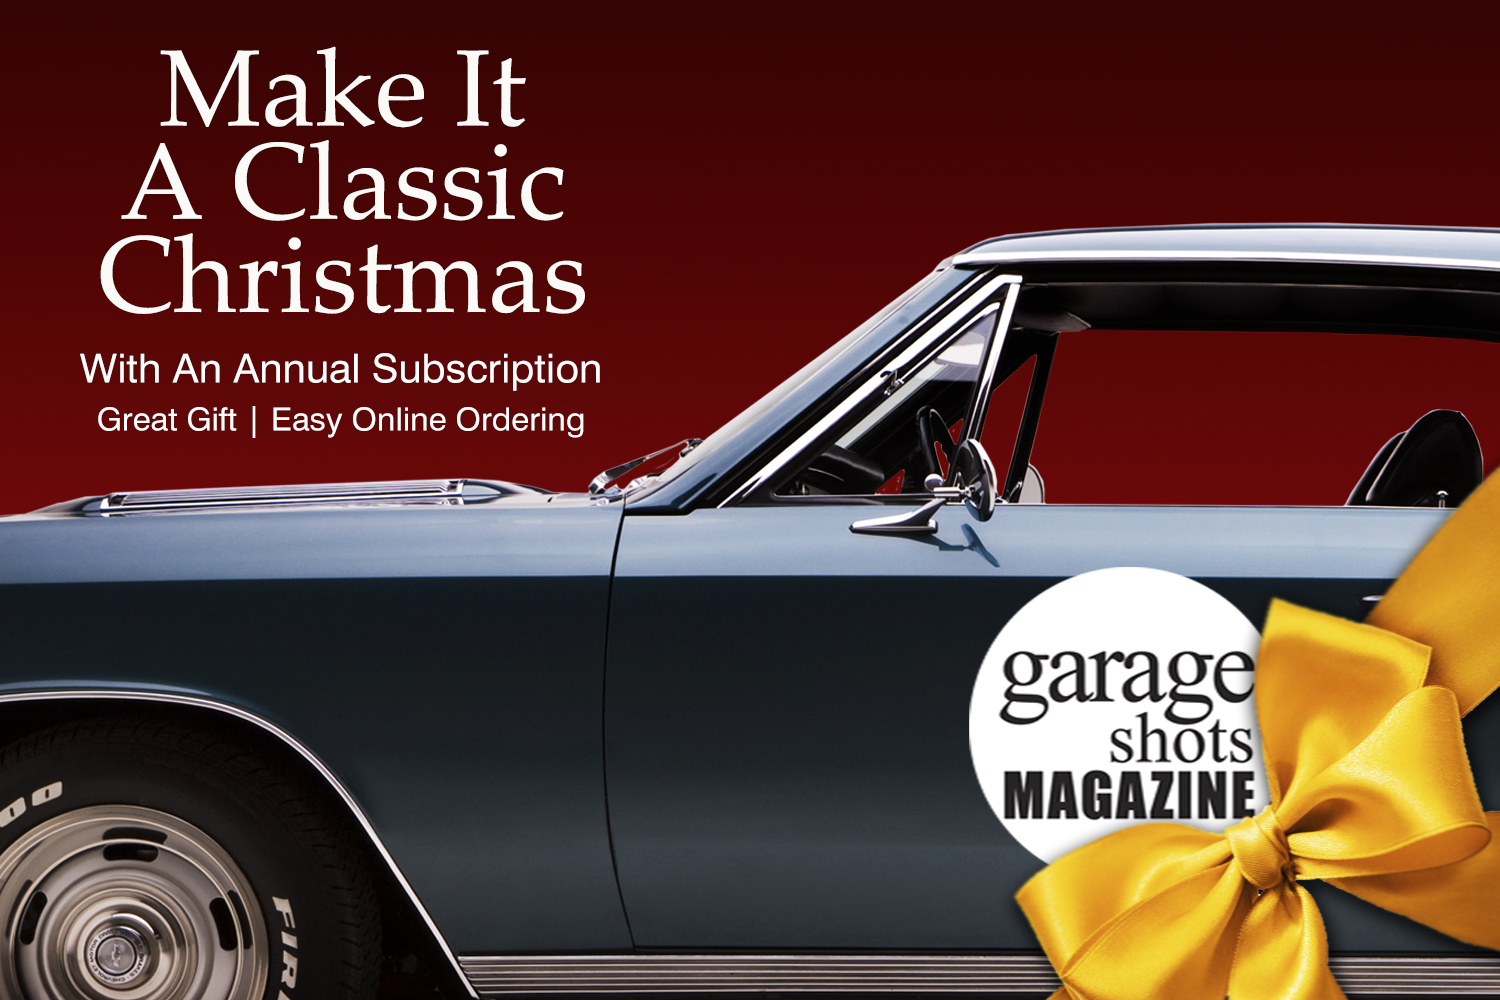 Christmas-Facebook-Subscription-Car-Ad-12.jpg